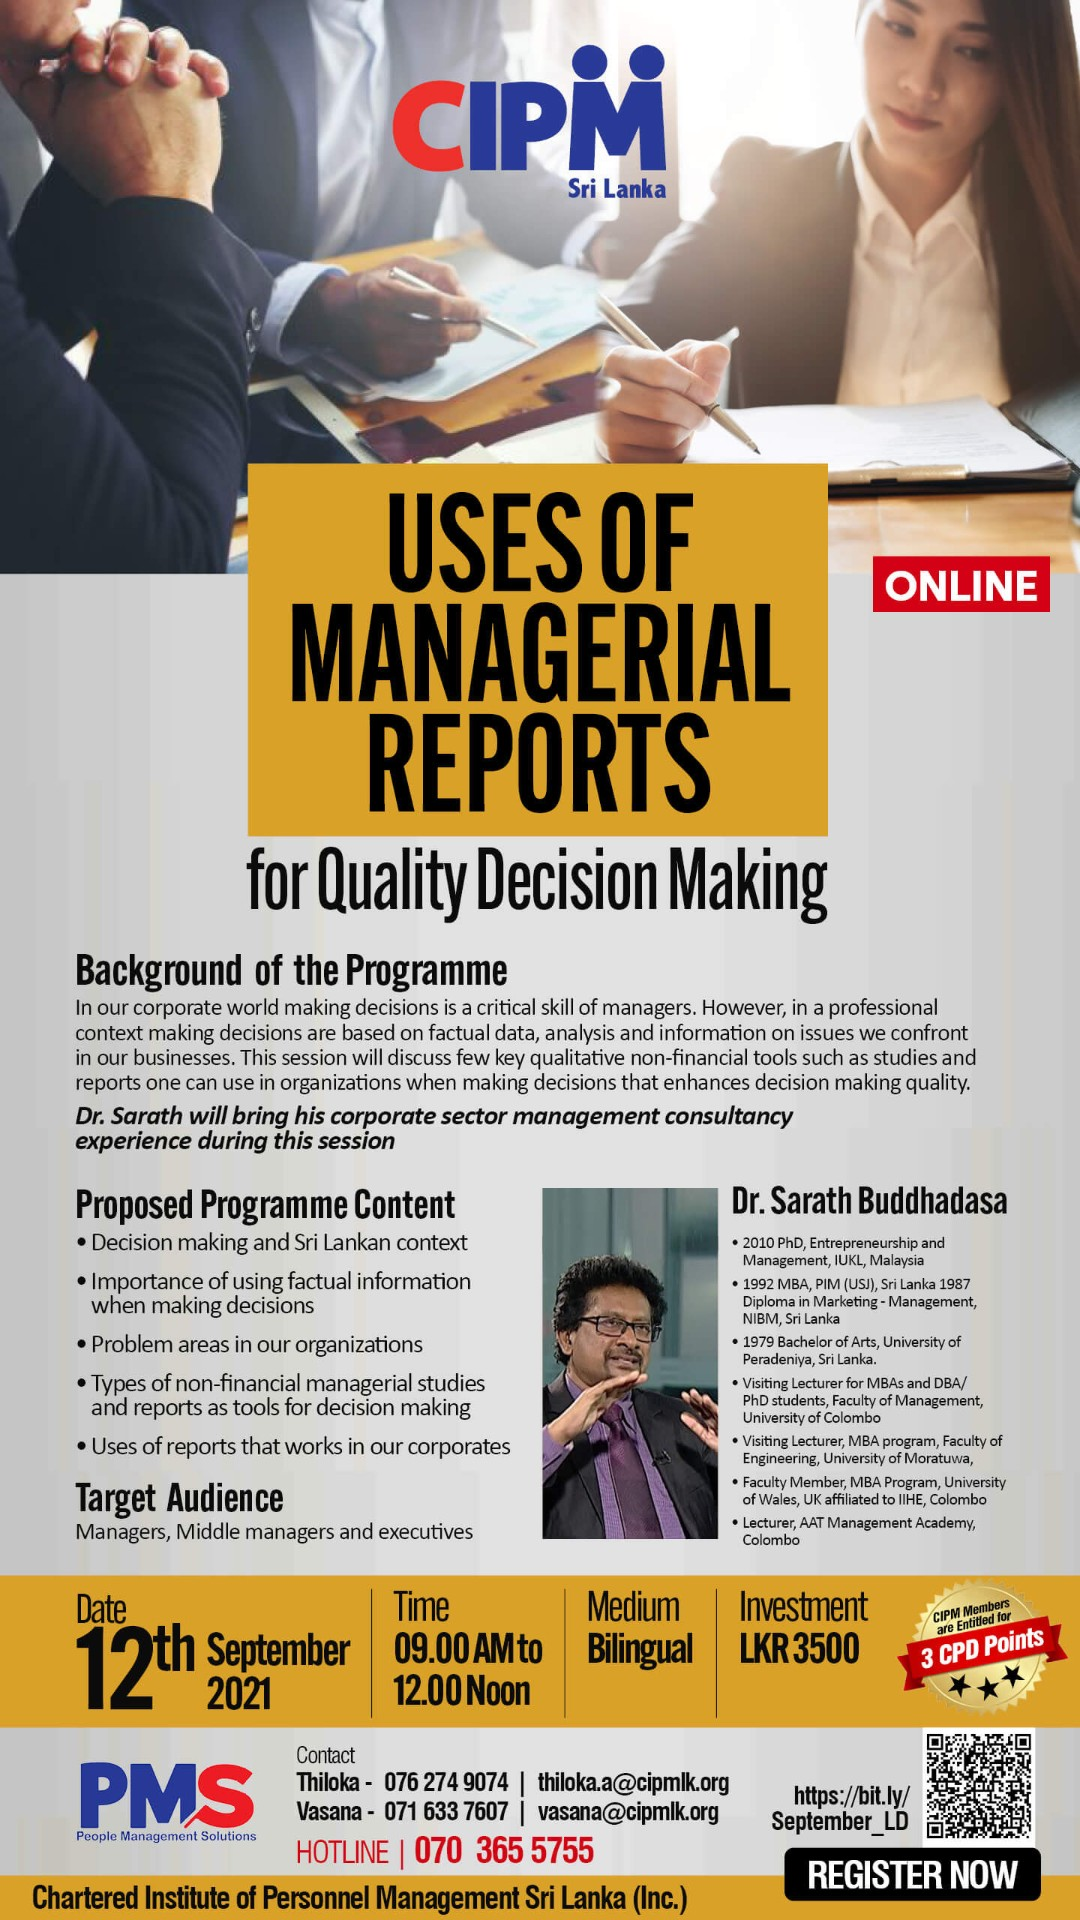 Uses of Managerial Reports for Quality Decision Making